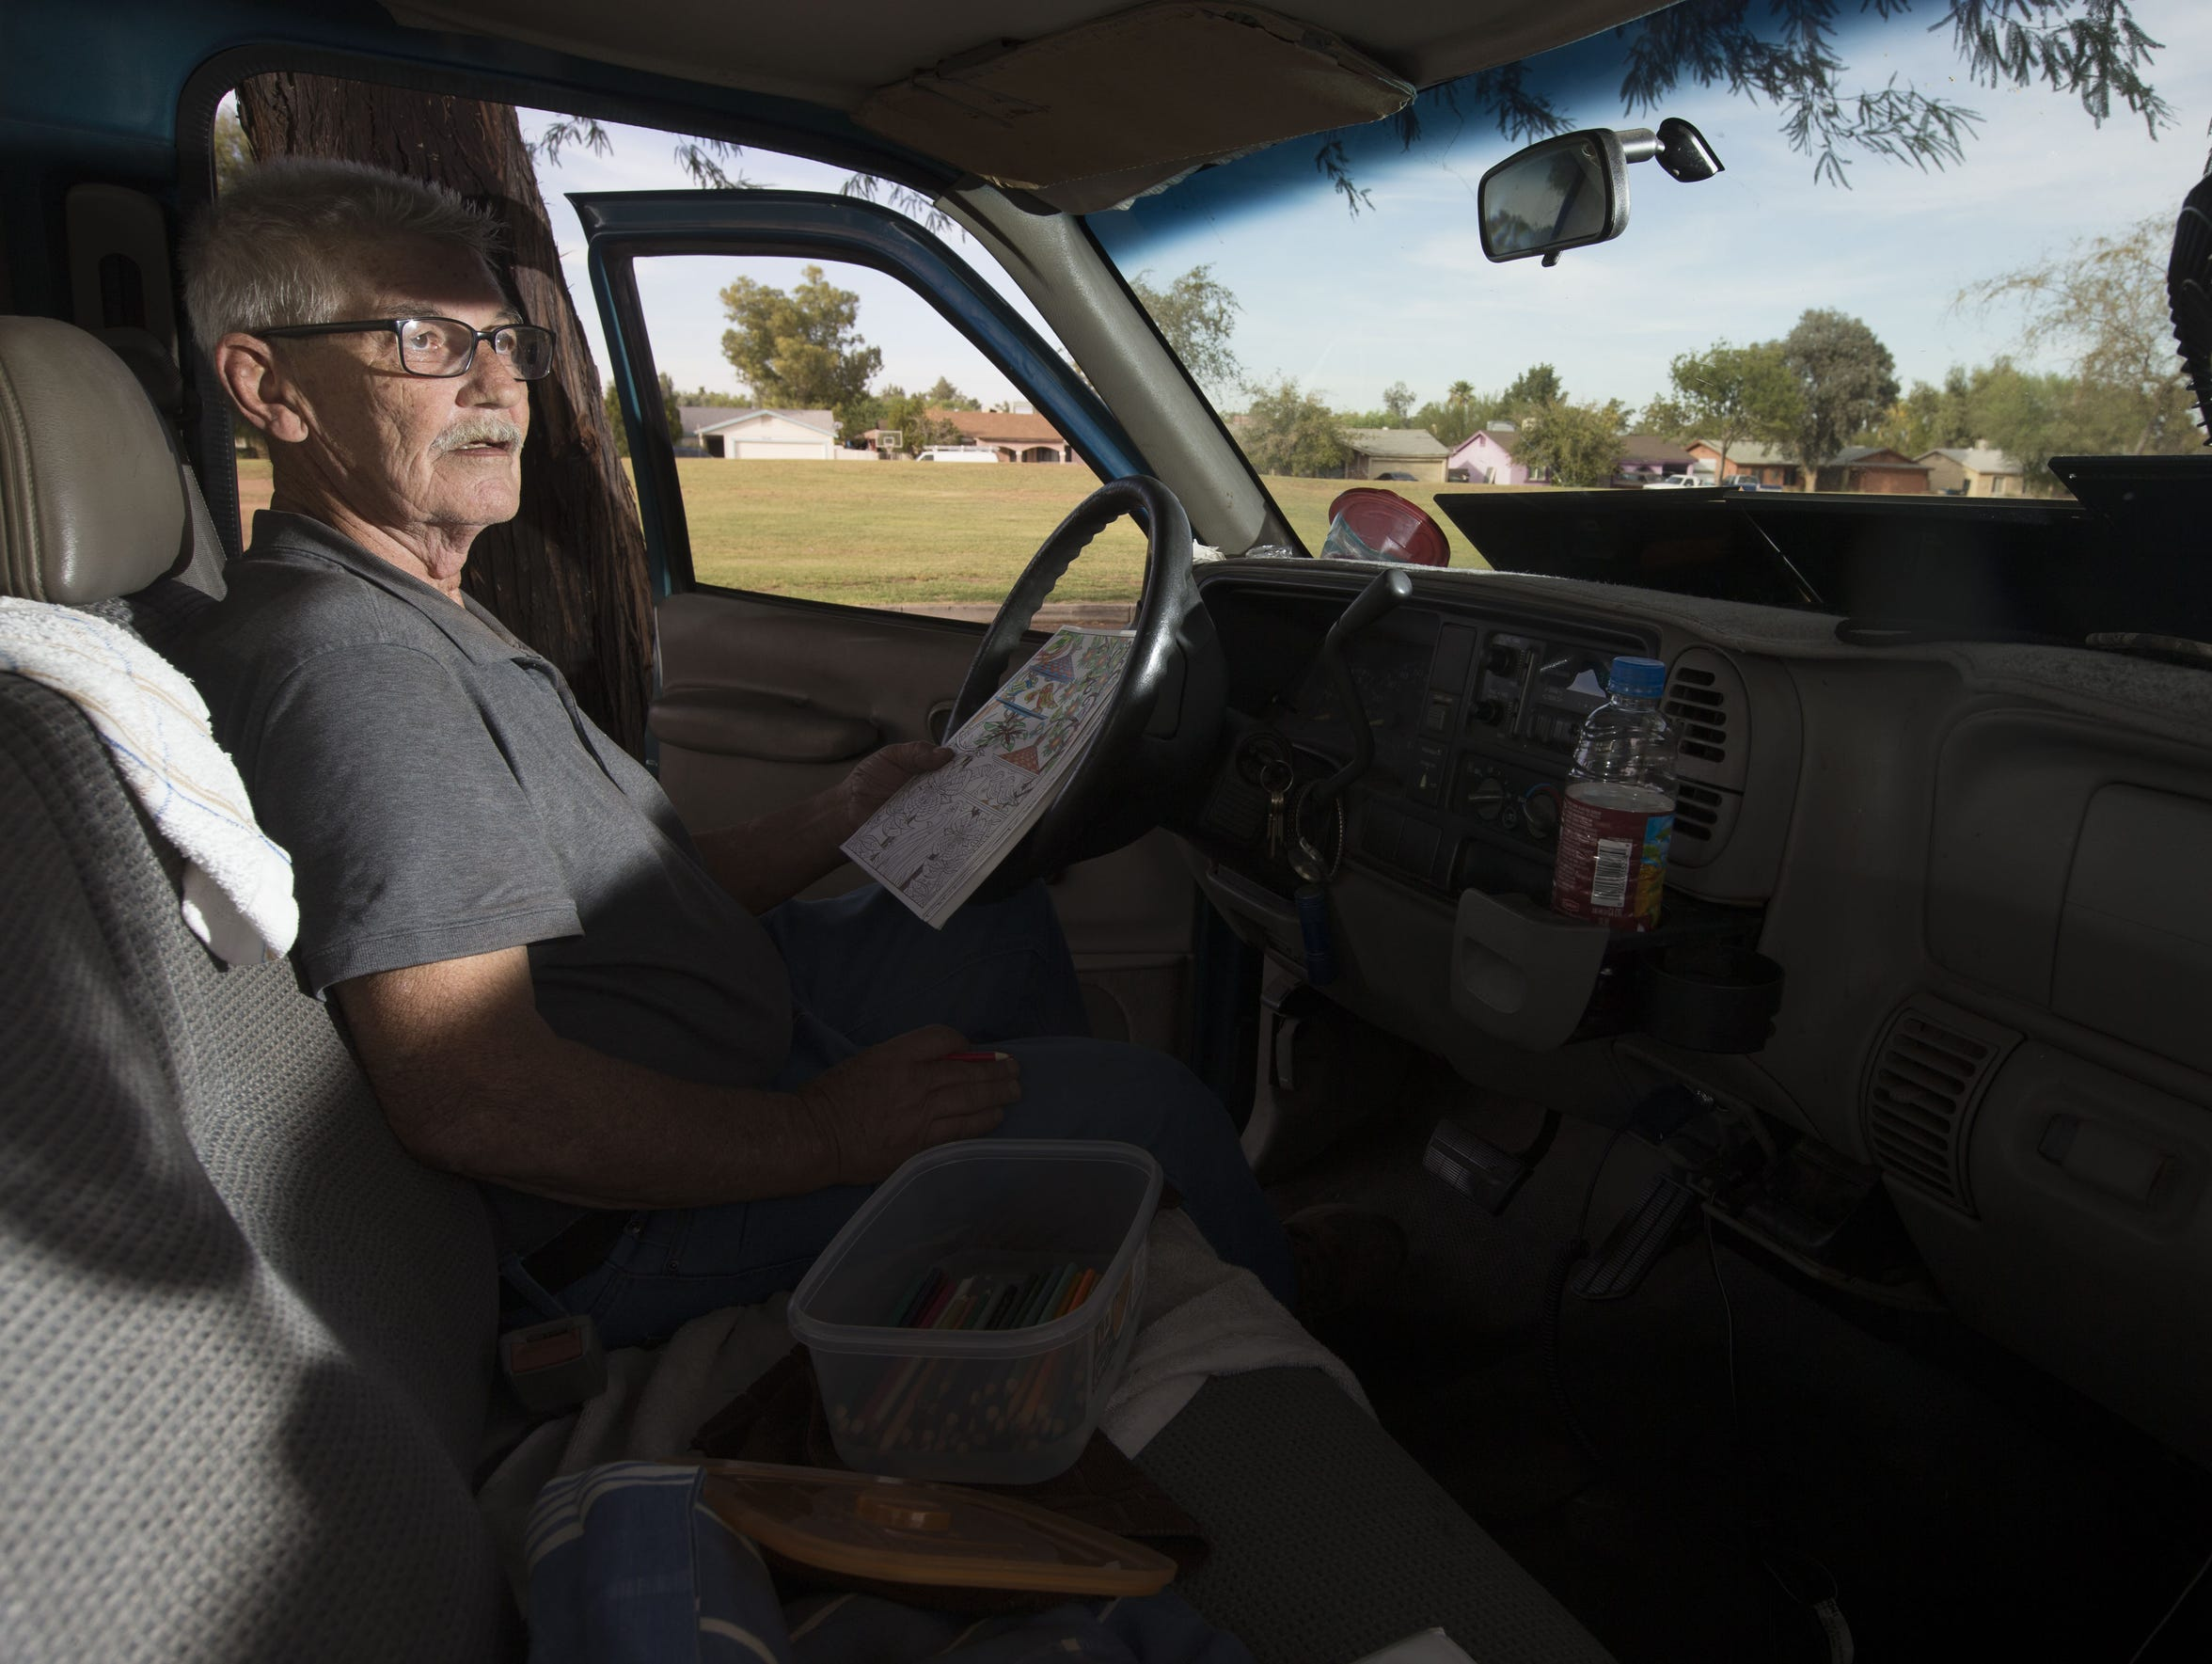 Daniel Runyan, who lives in his truck, is parked at